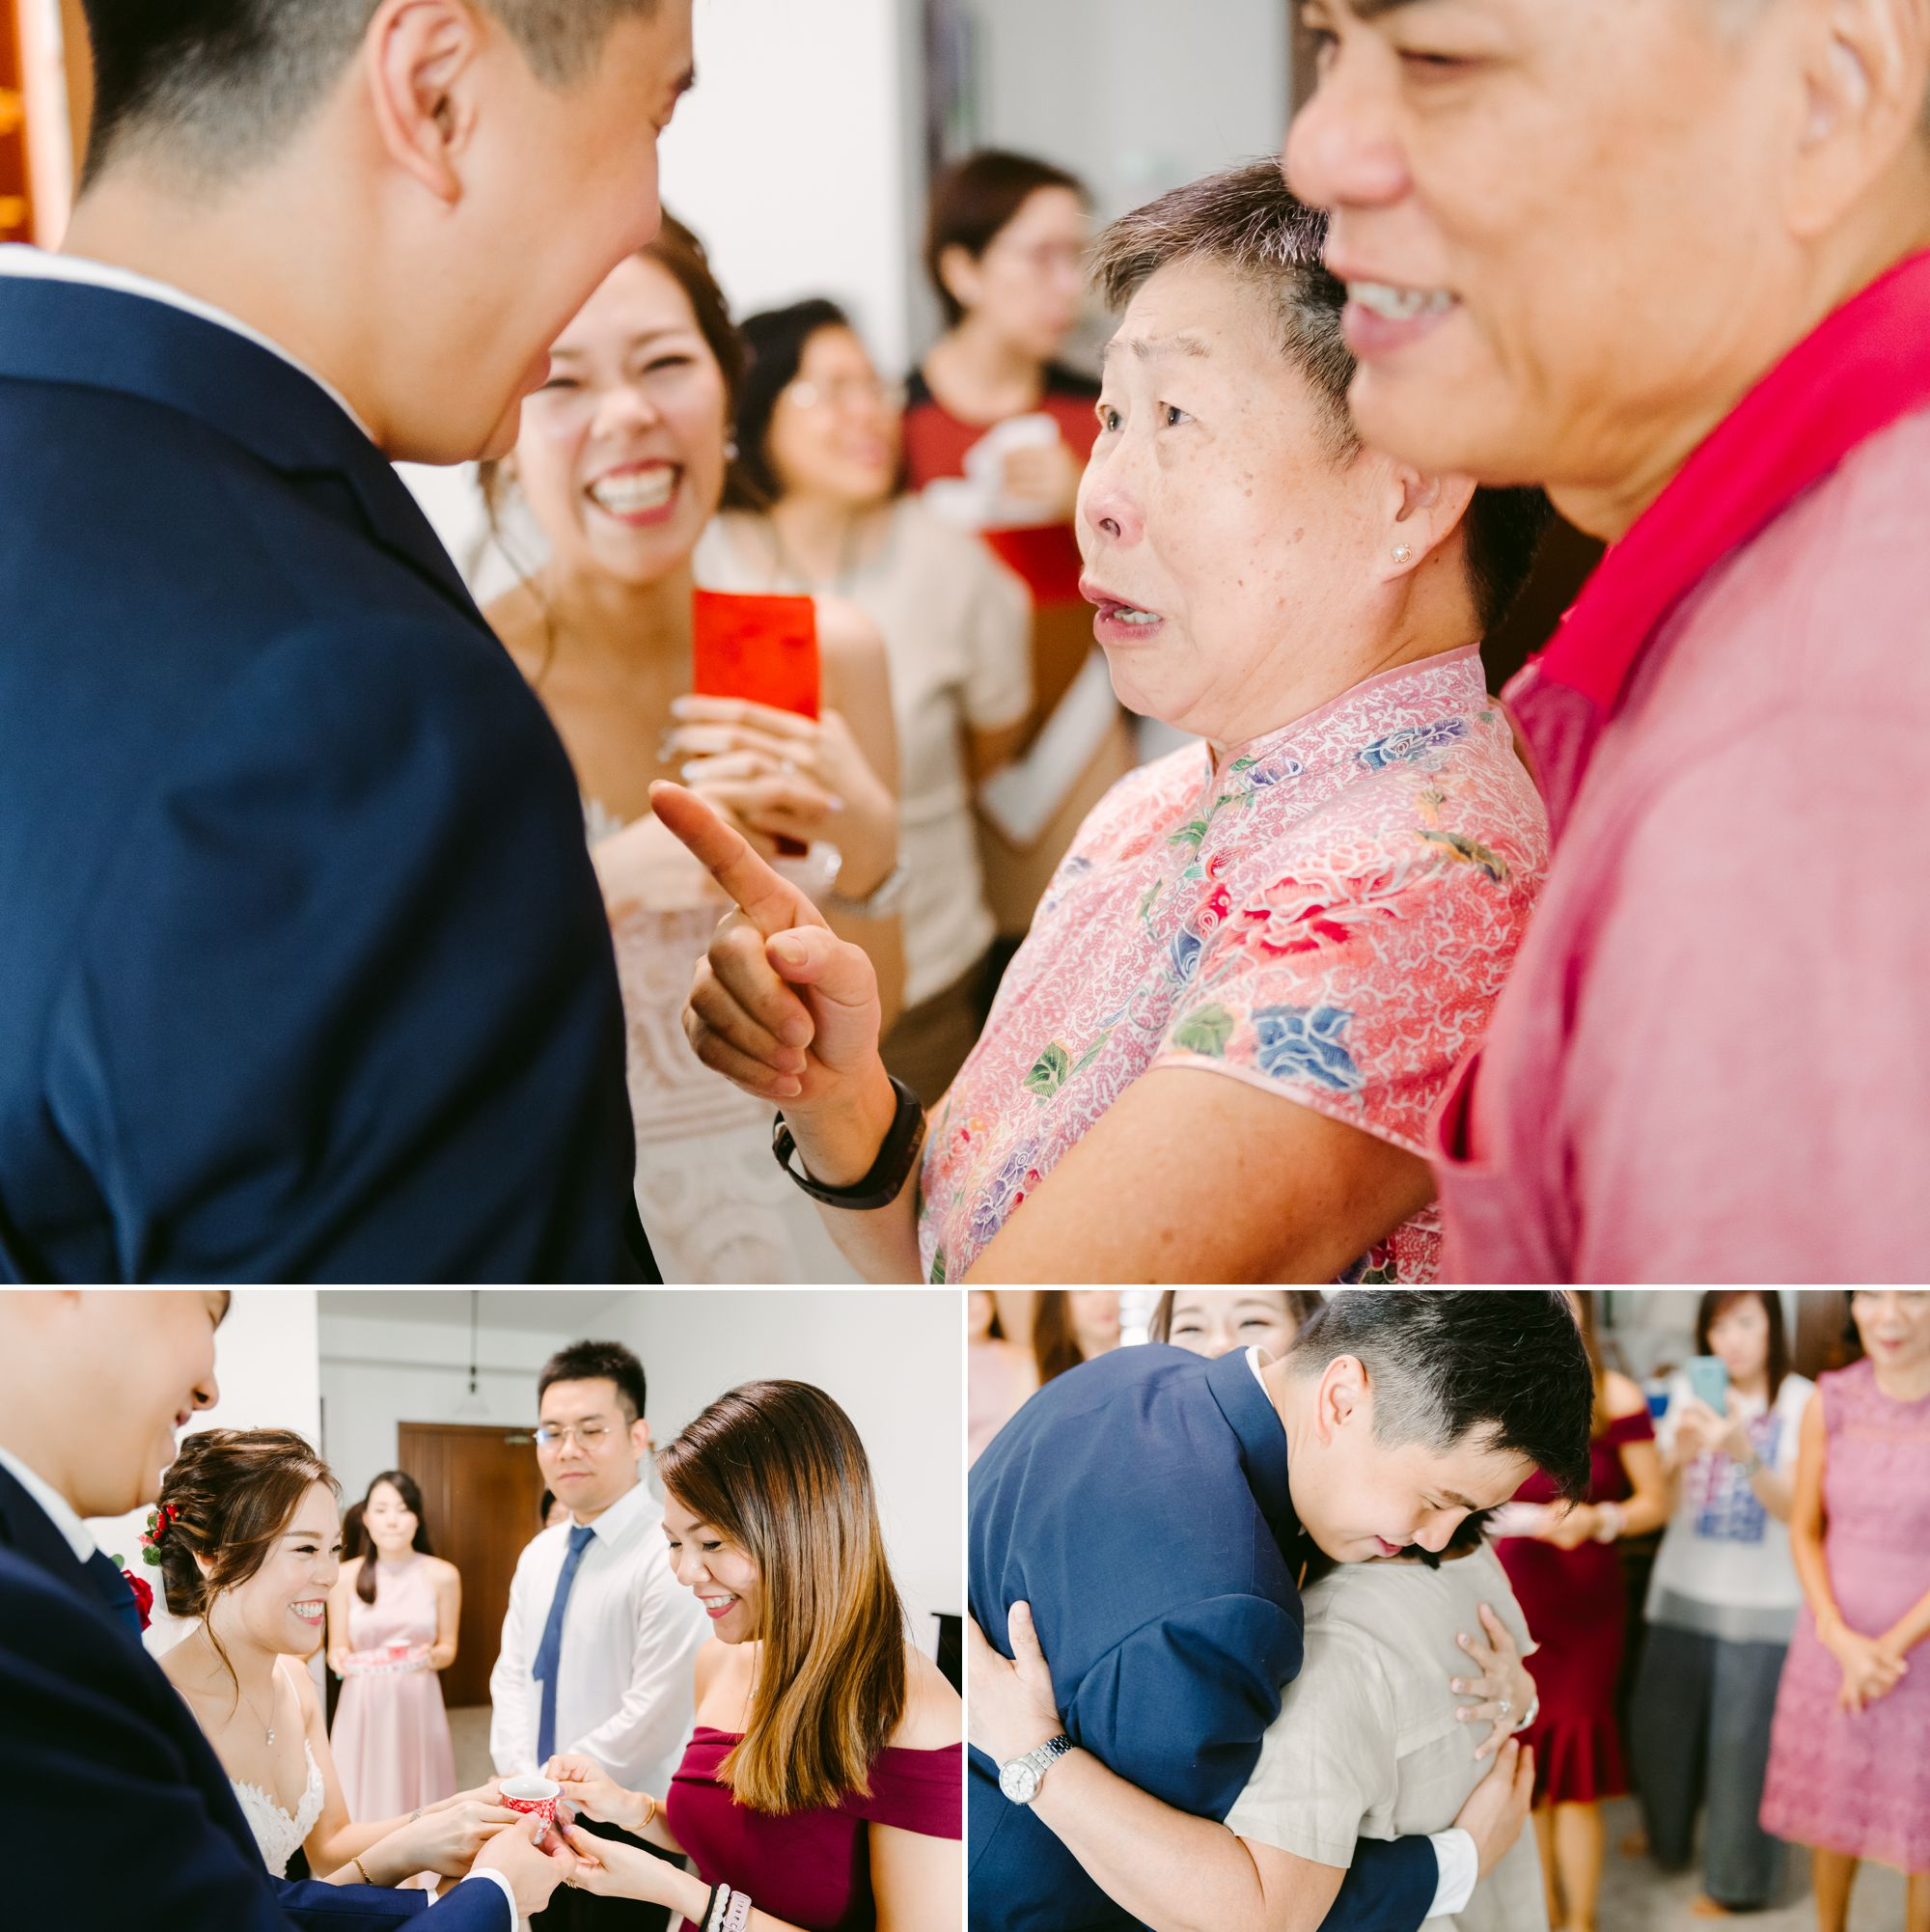 conrad_wedding_Singapore_ 20.jpg